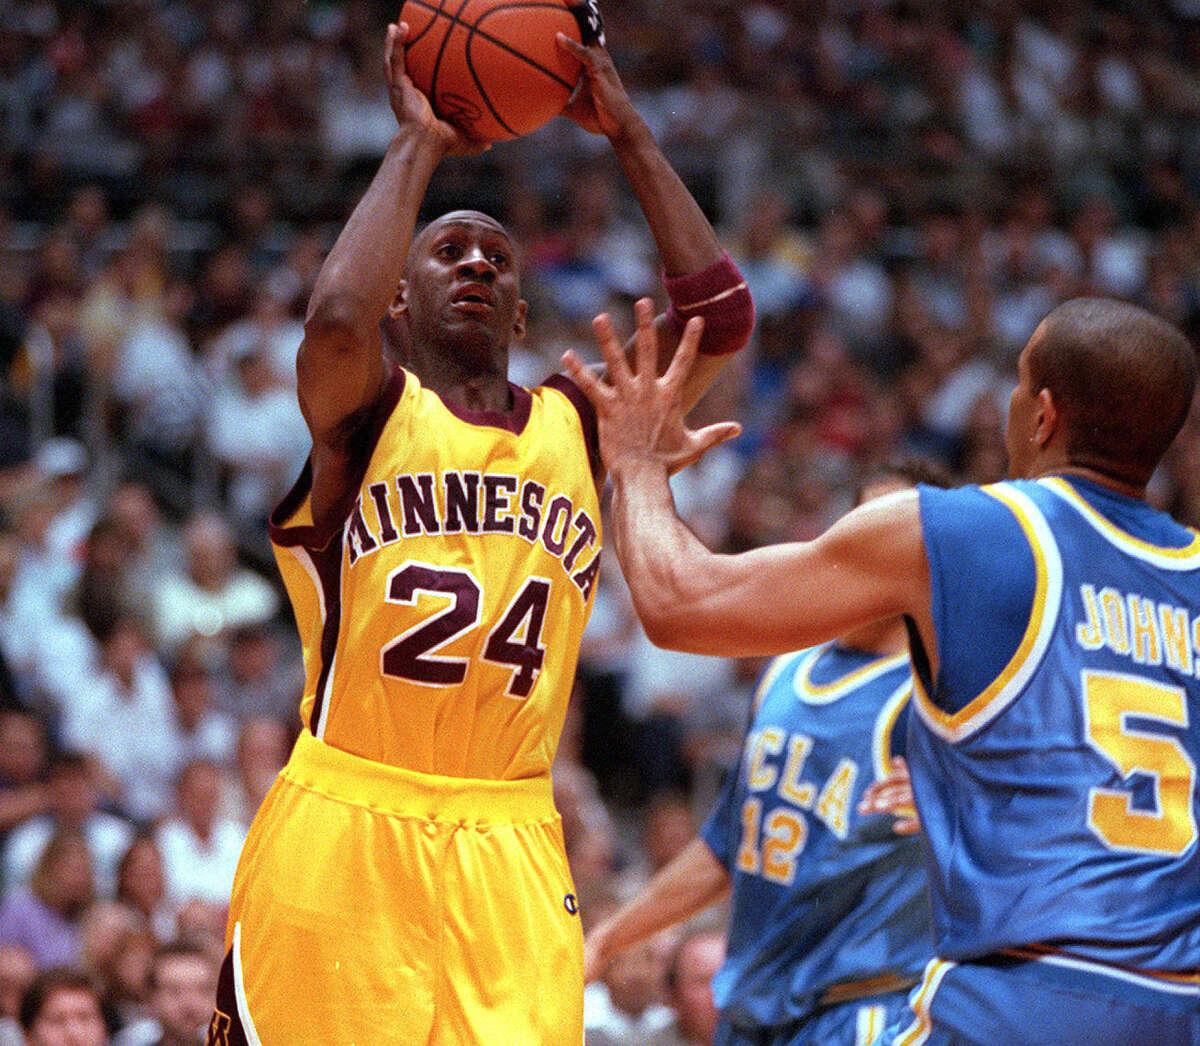 1997 Midwest RegionalSemifinals: Minnesota 90, Clemson 84; UCLA 74, Iowa State 73 - Both went to overtime, with the top-seed Gophers needing two of them to beat Clemson. Bobby Jackson scored a career-high 36 points and Sam Jacobson had 29 for Minnesota. Cameron Dollar's bank shot with 1.9 seconds left game him 20 points and UCLA a win over the Cyclones. Final: Minnesota 80, UCLA 72 - The Gophers overcame a 10-point deficit in the final 13 minutes to advance to the Final Four, but NCAA sanctions for academic fraud wiped it all from official existence. Attendance: Semis (29,231); final (31,930)Photo: Bobby Jackson's scoring helped take Minnesota to the Final Four in 1997.